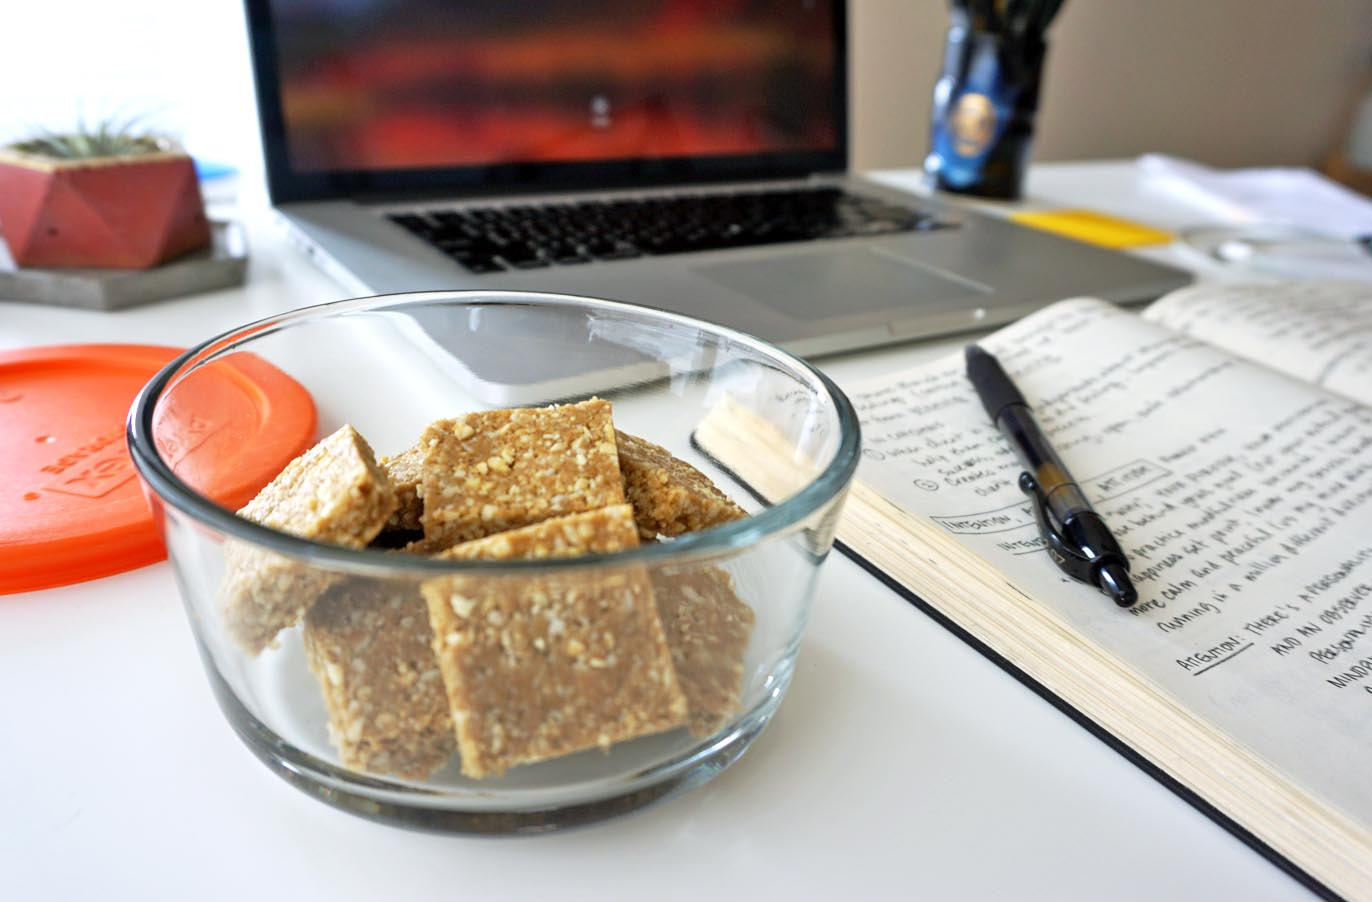 ginger turmeric bone broth protein bites in a glass container next to an open notebook and a computer